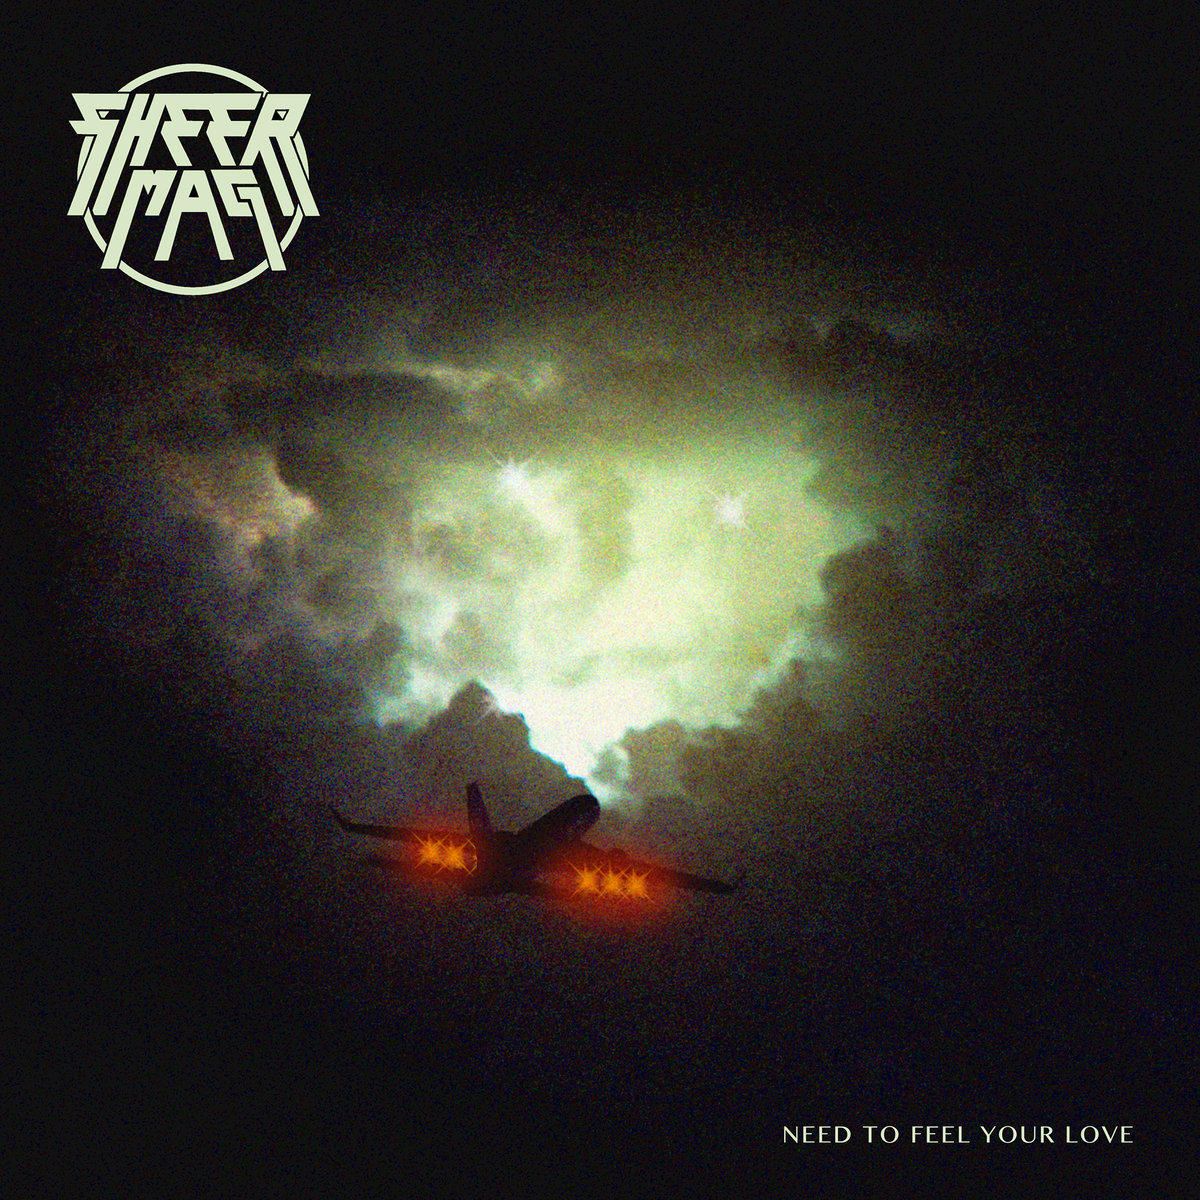 SHEER MAG NEED TO FEEL YOUR LOVE